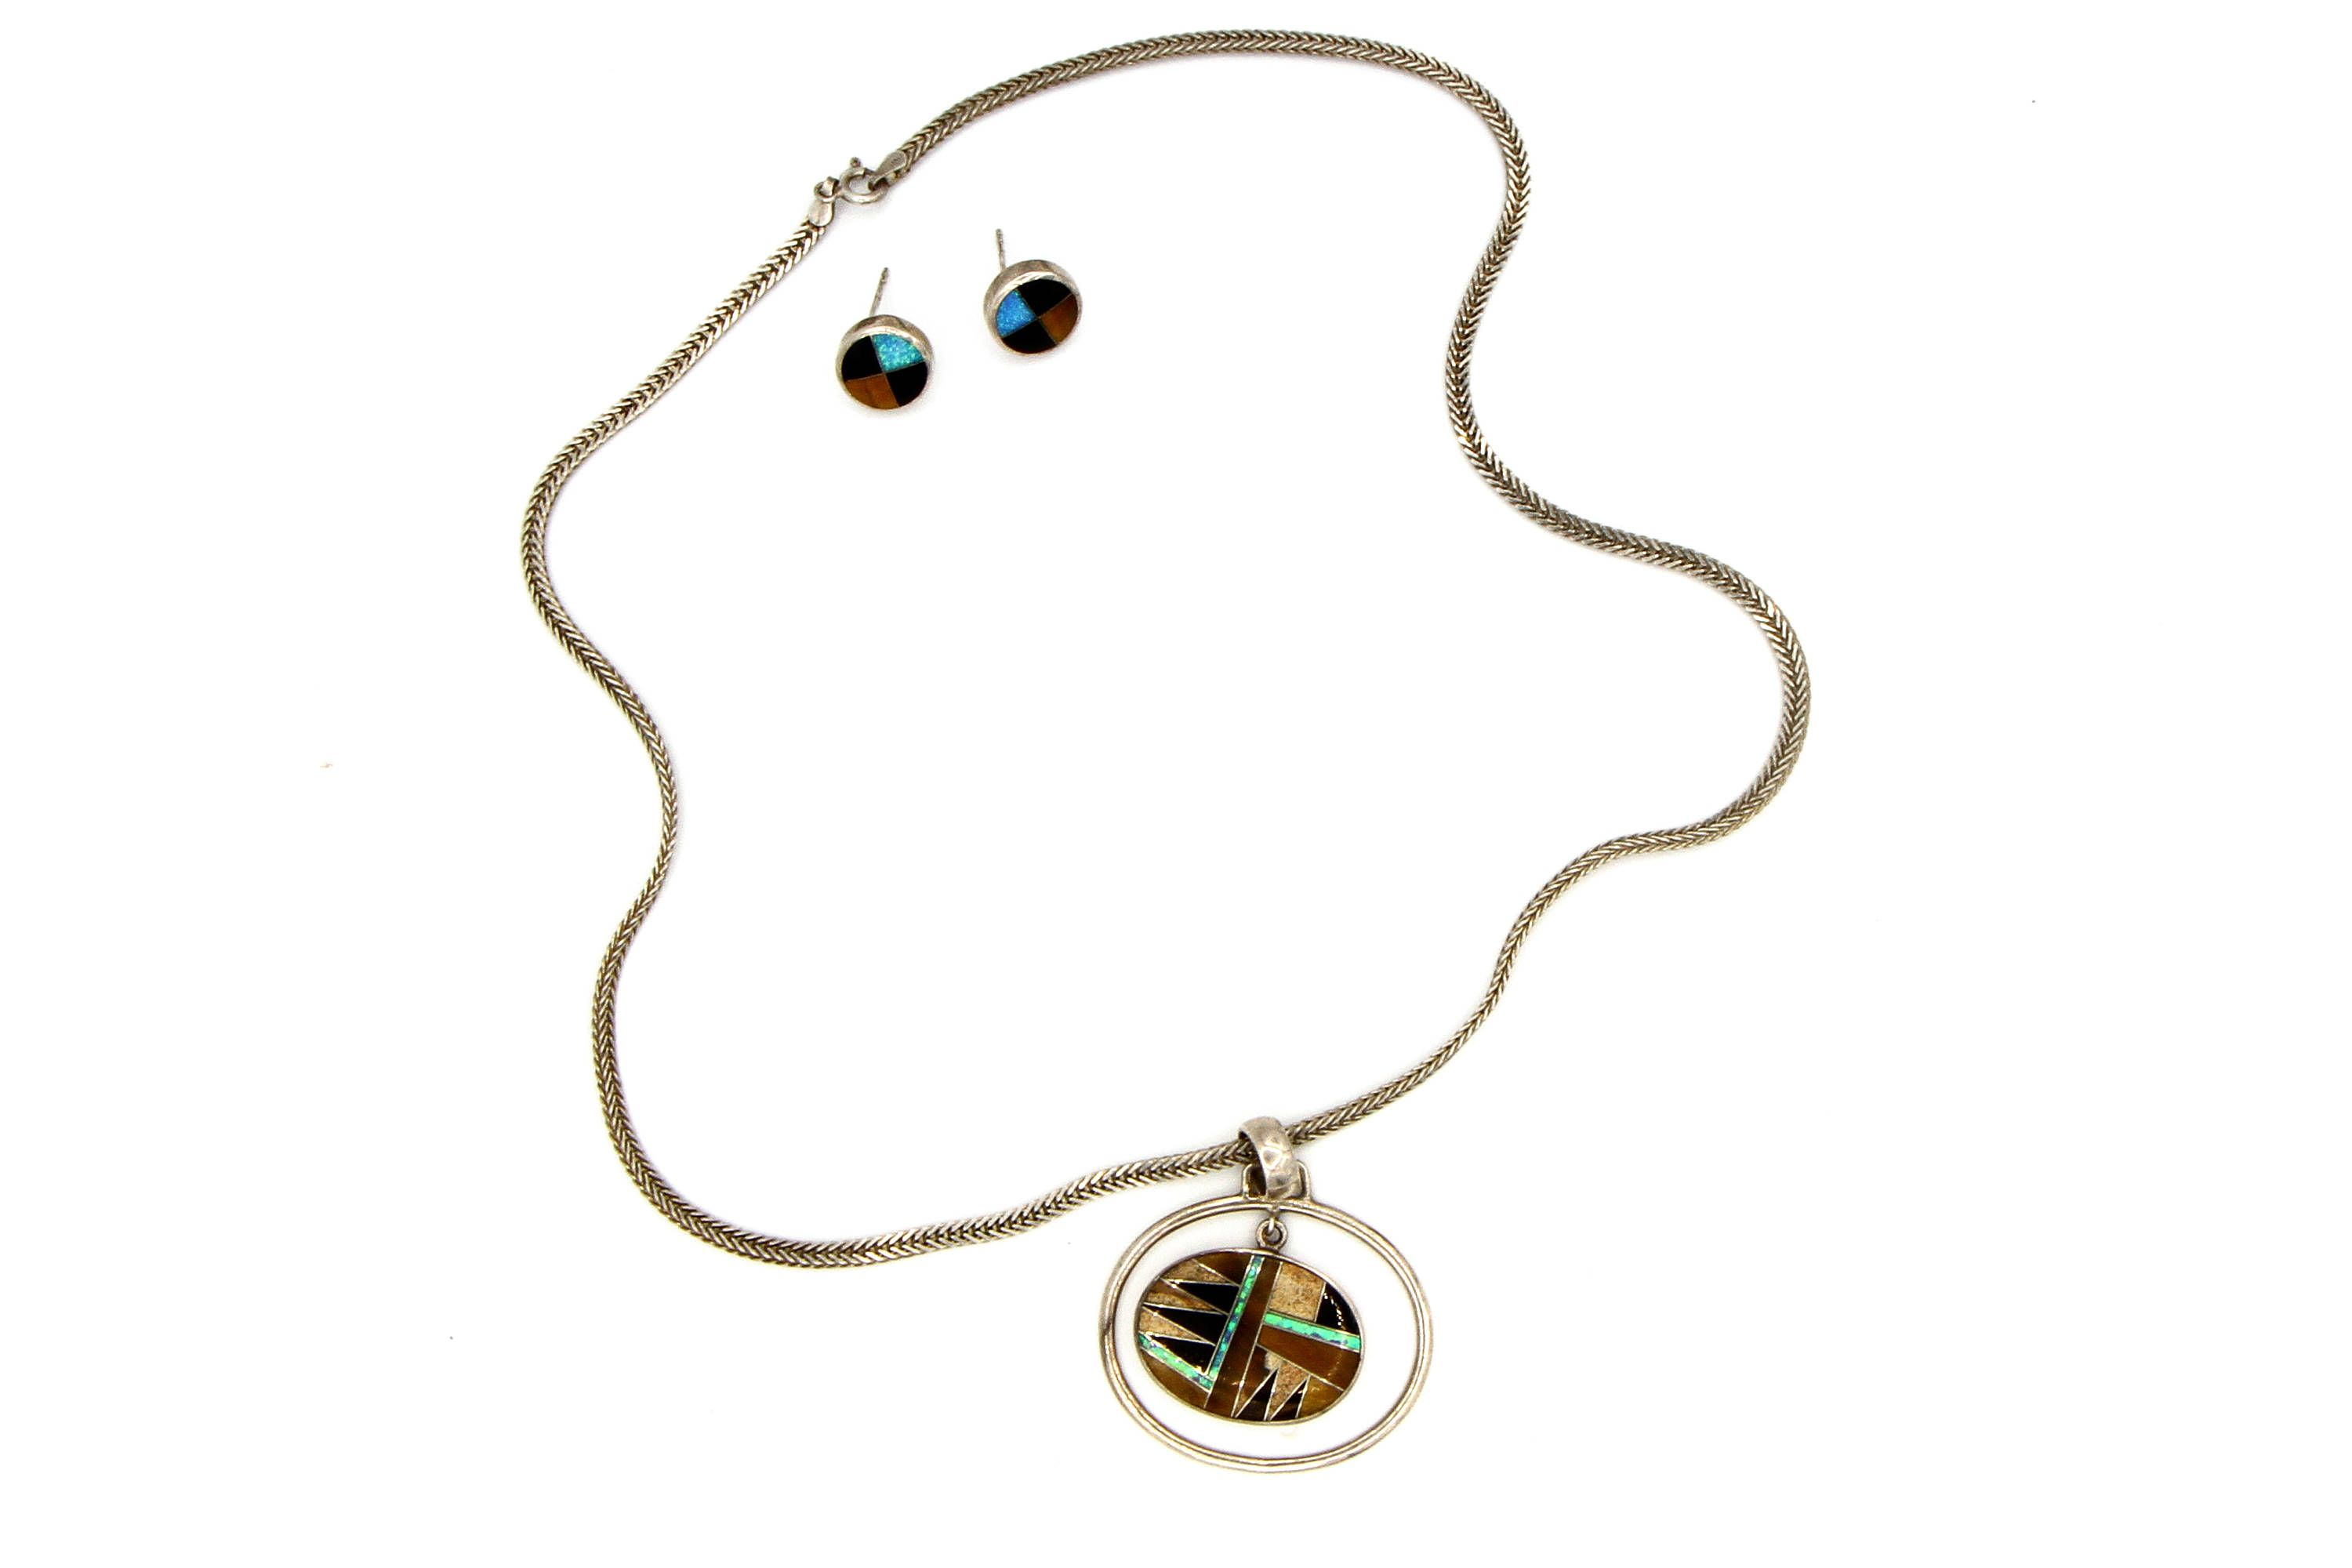 american listing design jabk eyes snake pendant zuni shadow native necklace box zoom il fullxfull